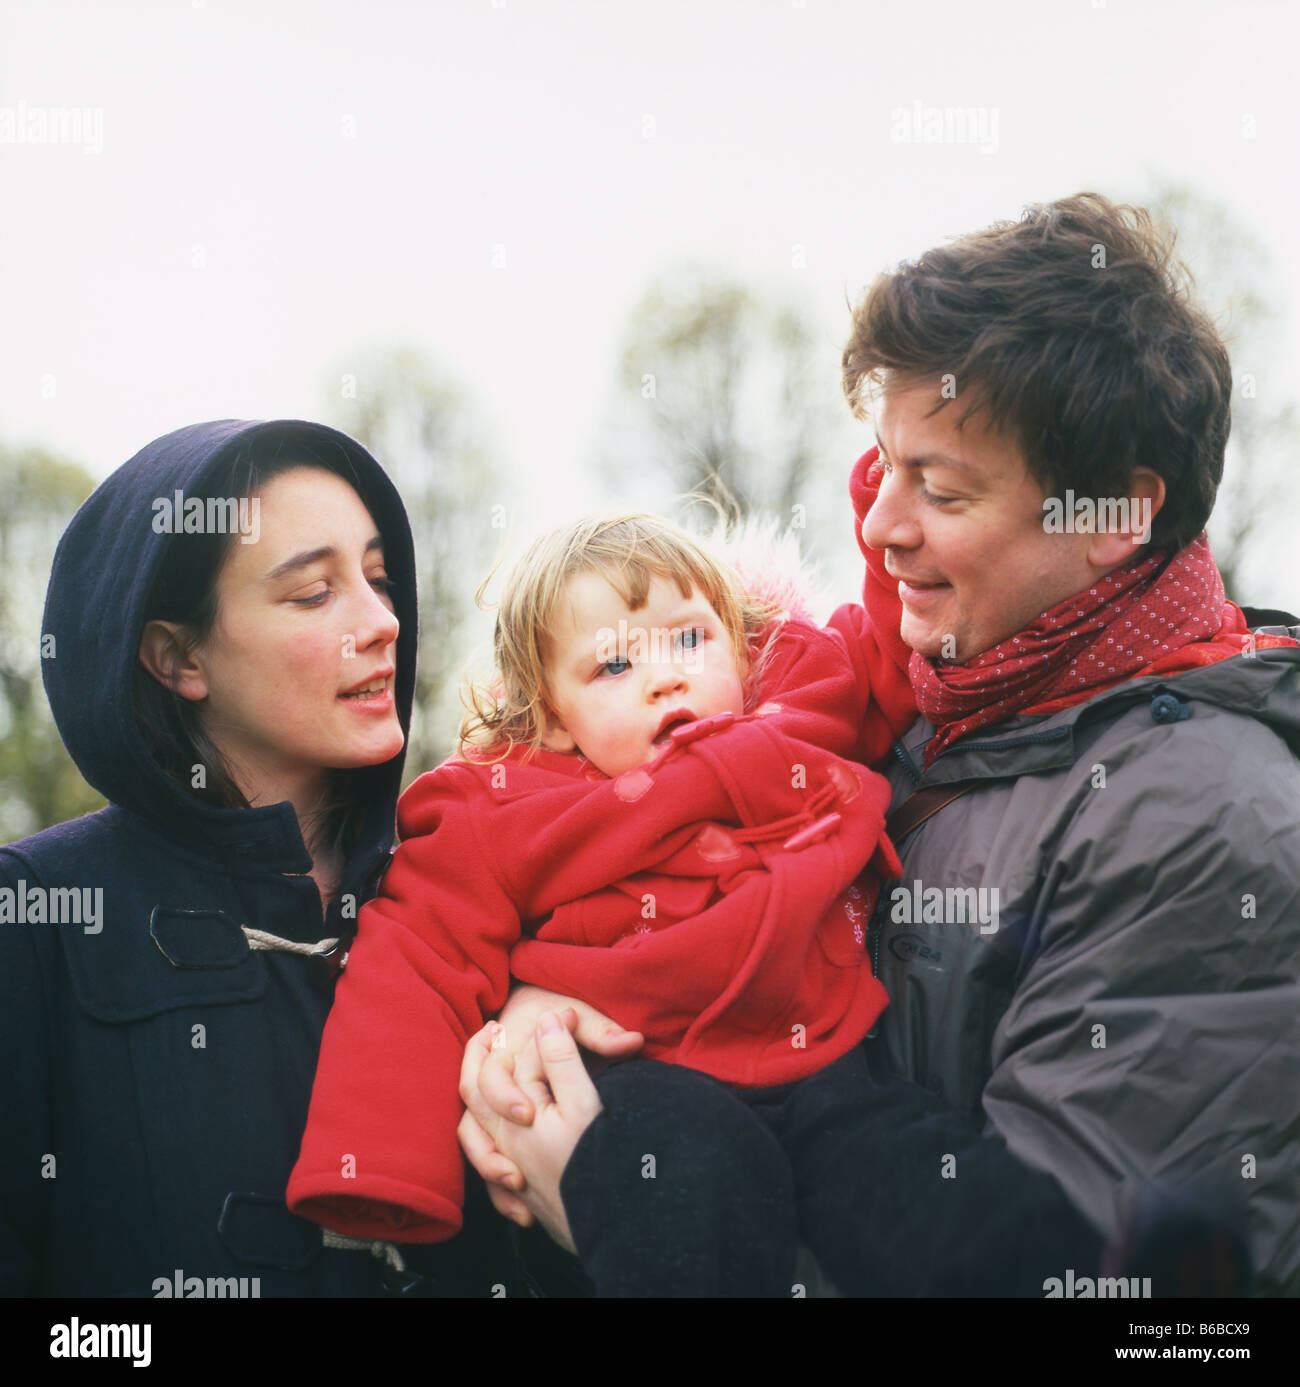 A London couple with a young child wearing winter clothing in a park in Walthamstow, London, England KATHY DEWITT - Stock Image